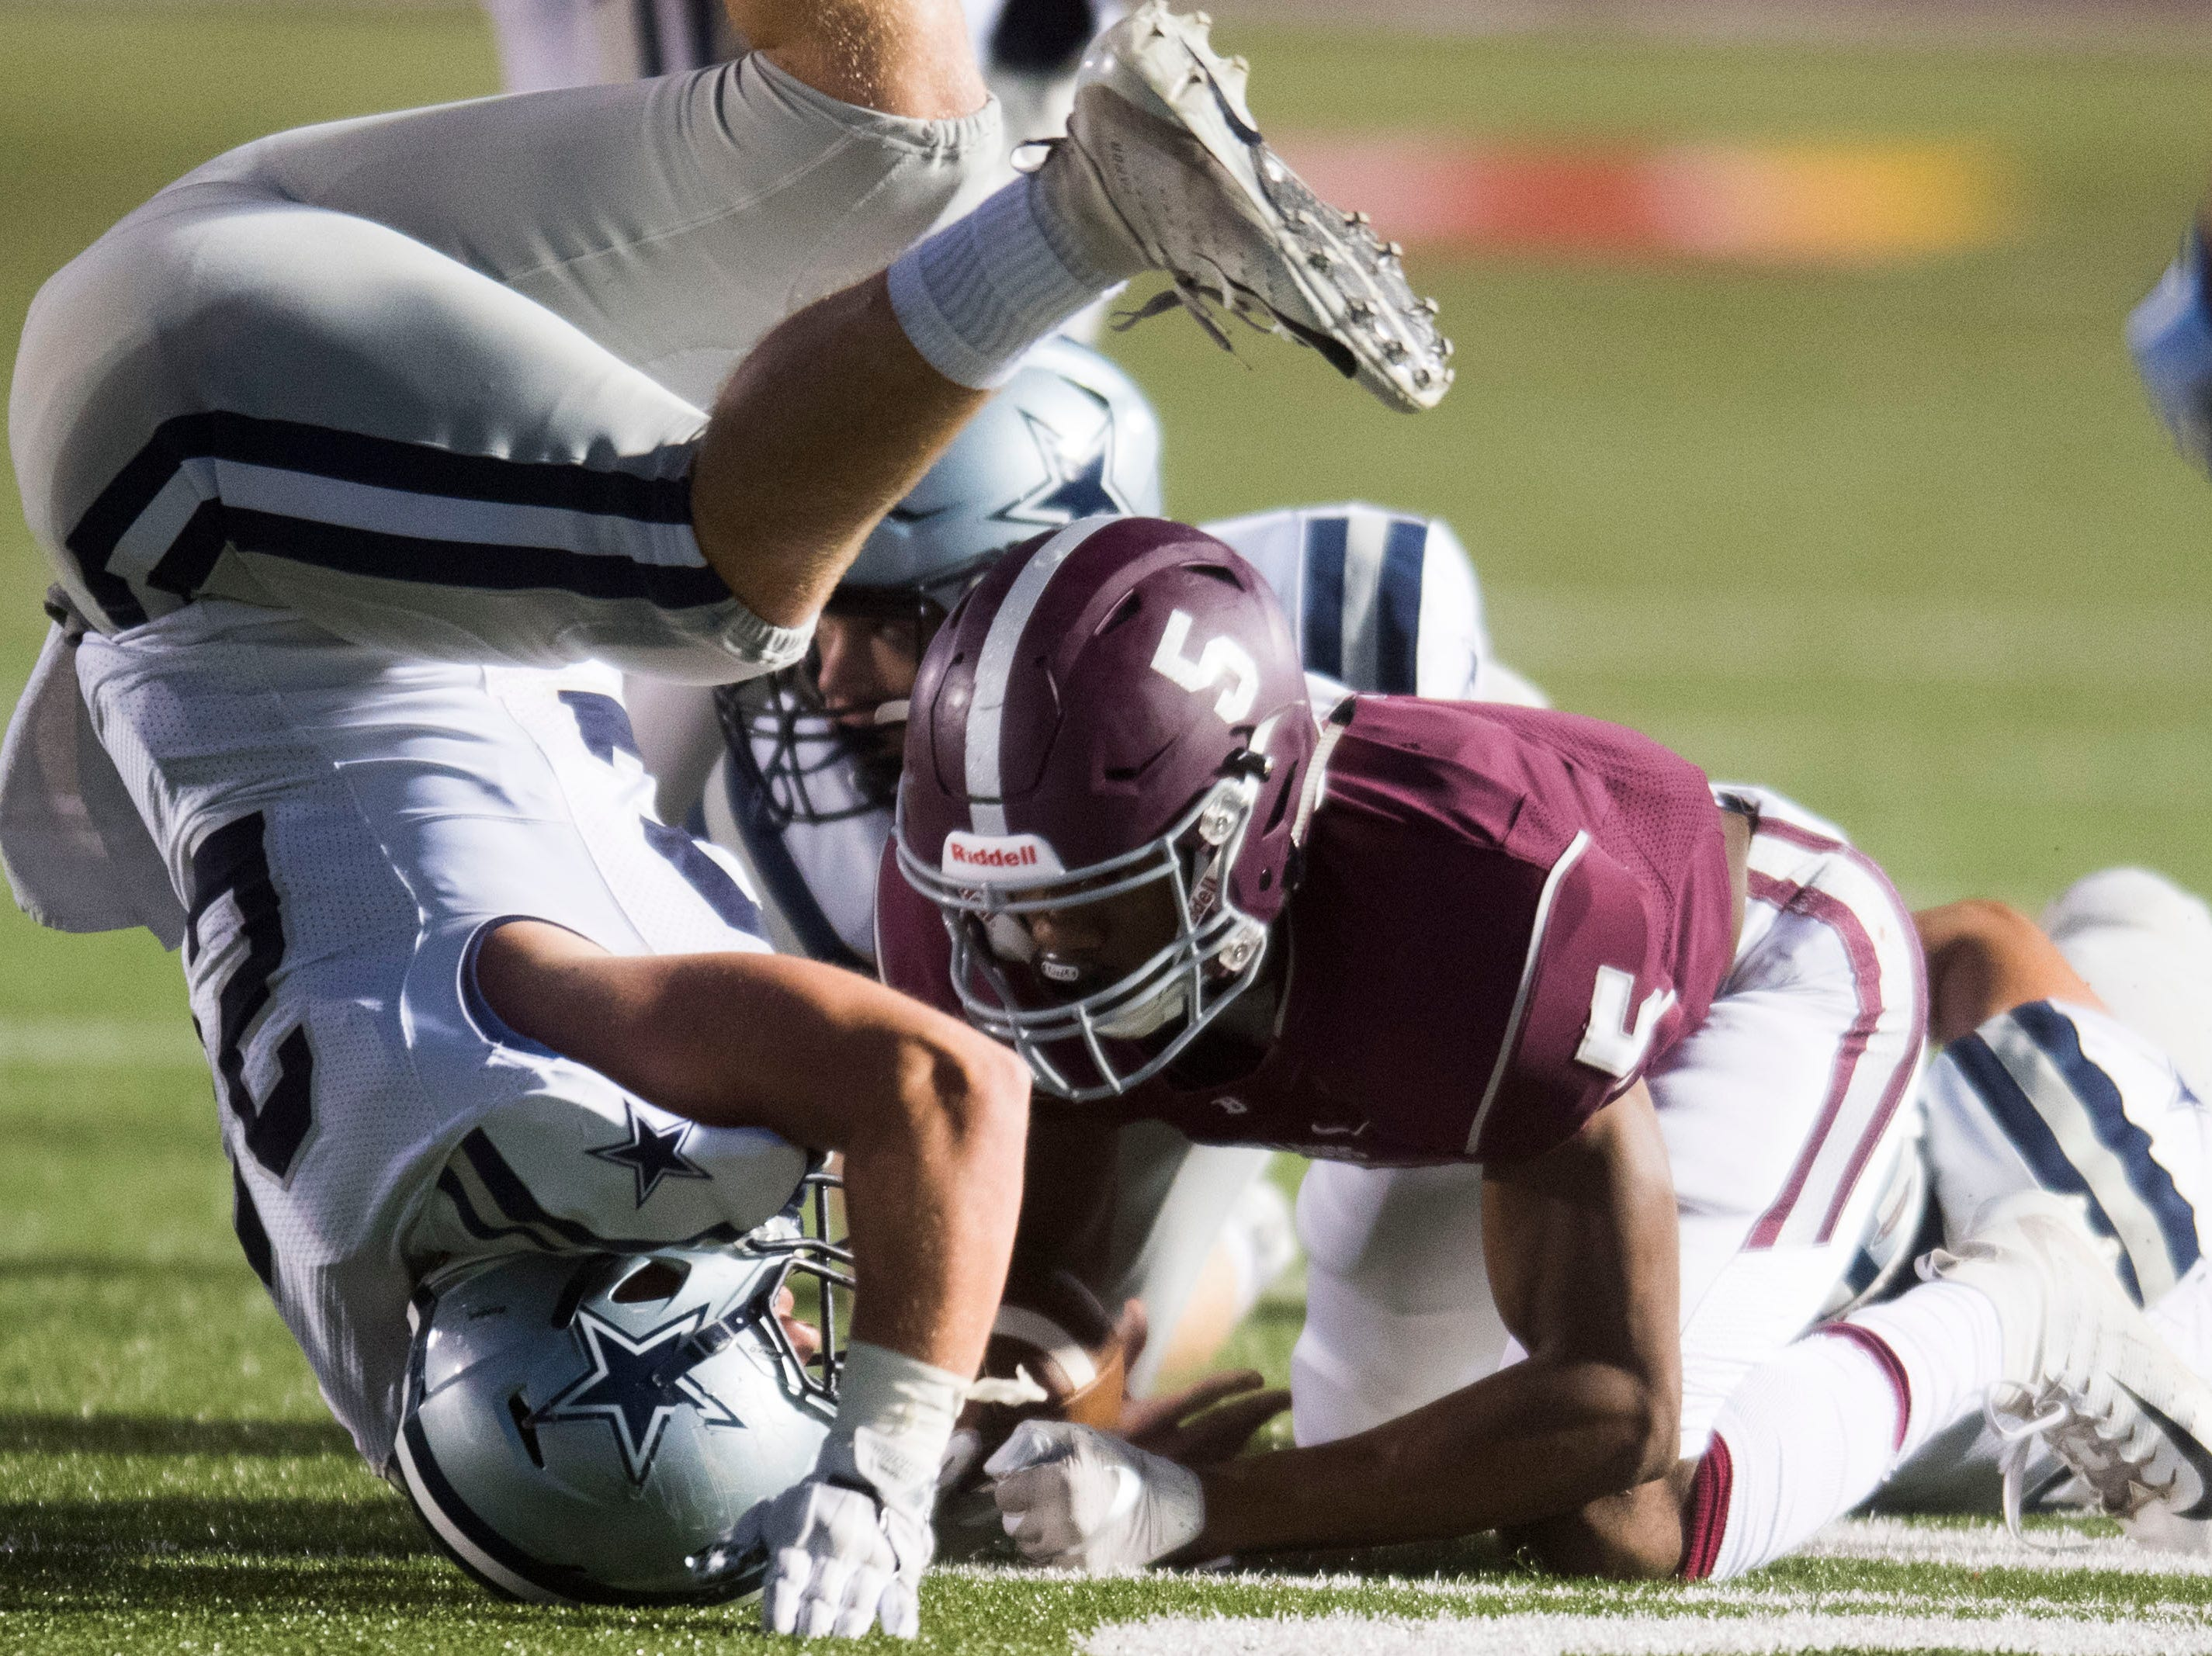 Bearden's Kahlil Abdullah (5) is tackled by a Farragut player during a game between Bearden and Farragut at Bearden Thursday, Oct. 11, 2018. Bearden took down Farragut 17-13.